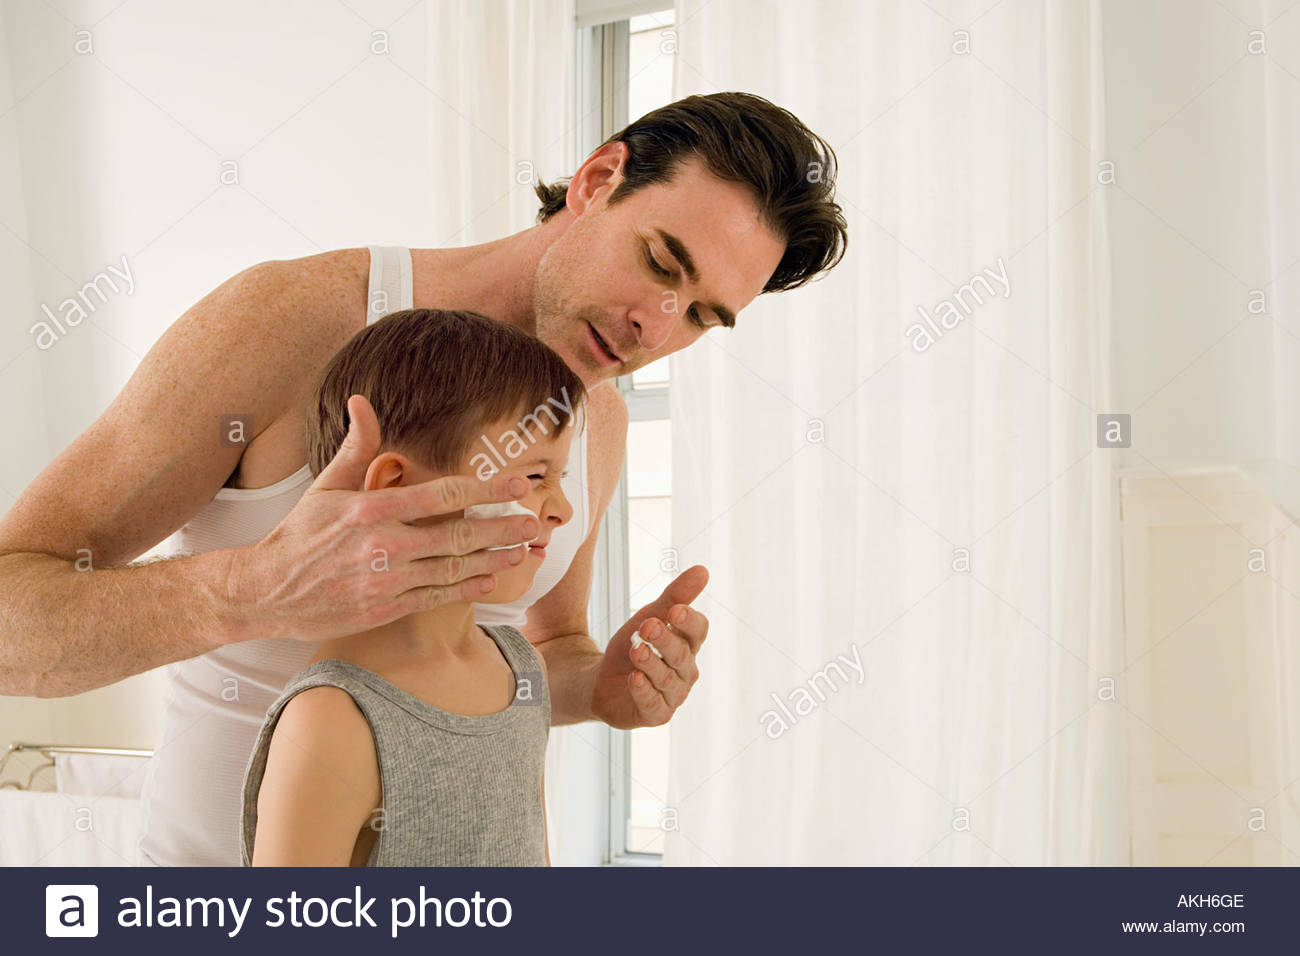 Father putting shaving cream on son - Stock Image